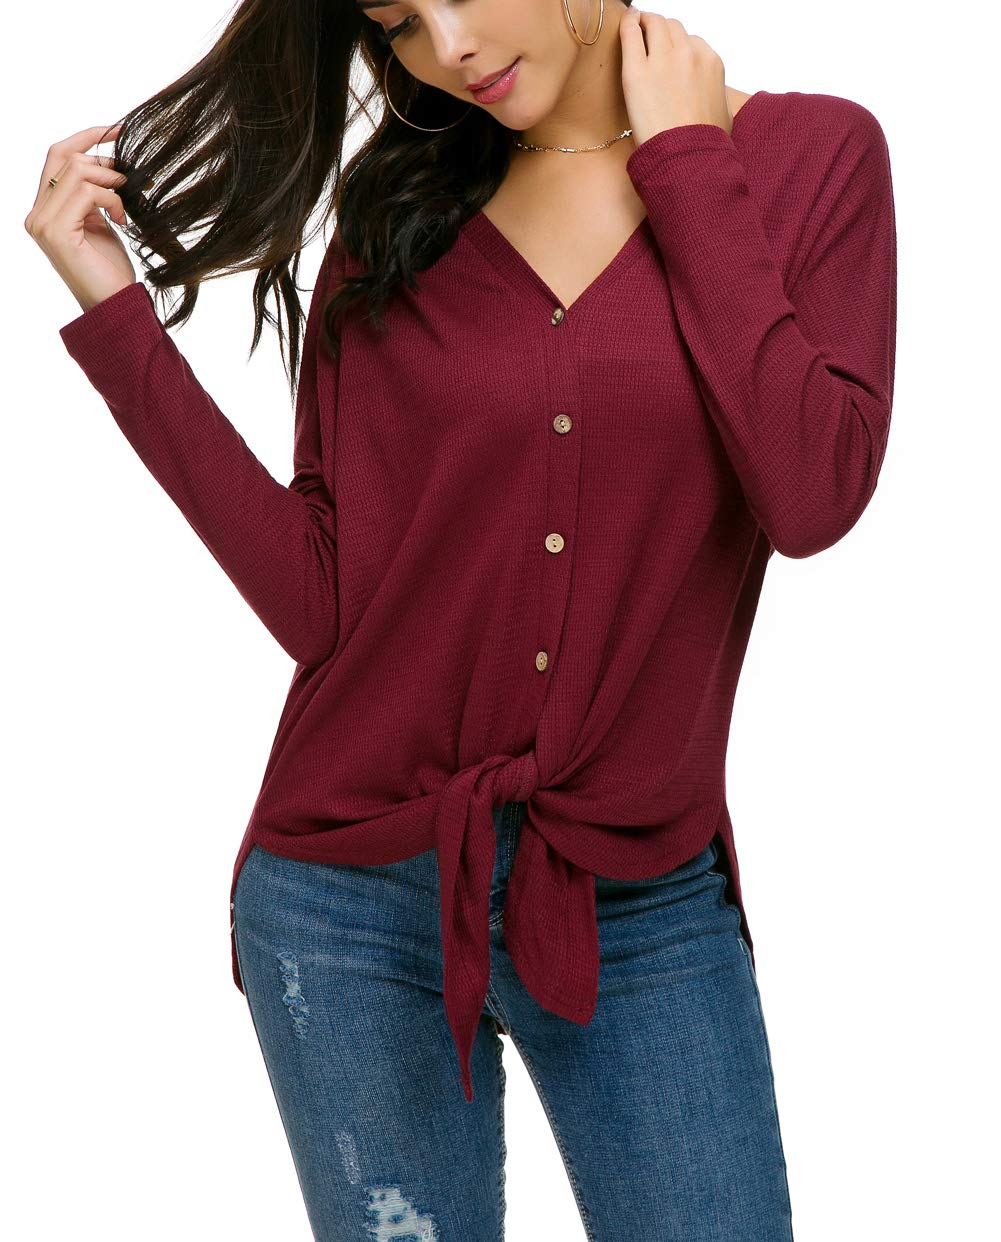 7cfae3d353d6a3 IWOLLENCE Womens Waffle Knit Tunic Blouse Tie Knot Henley Tops Loose ...